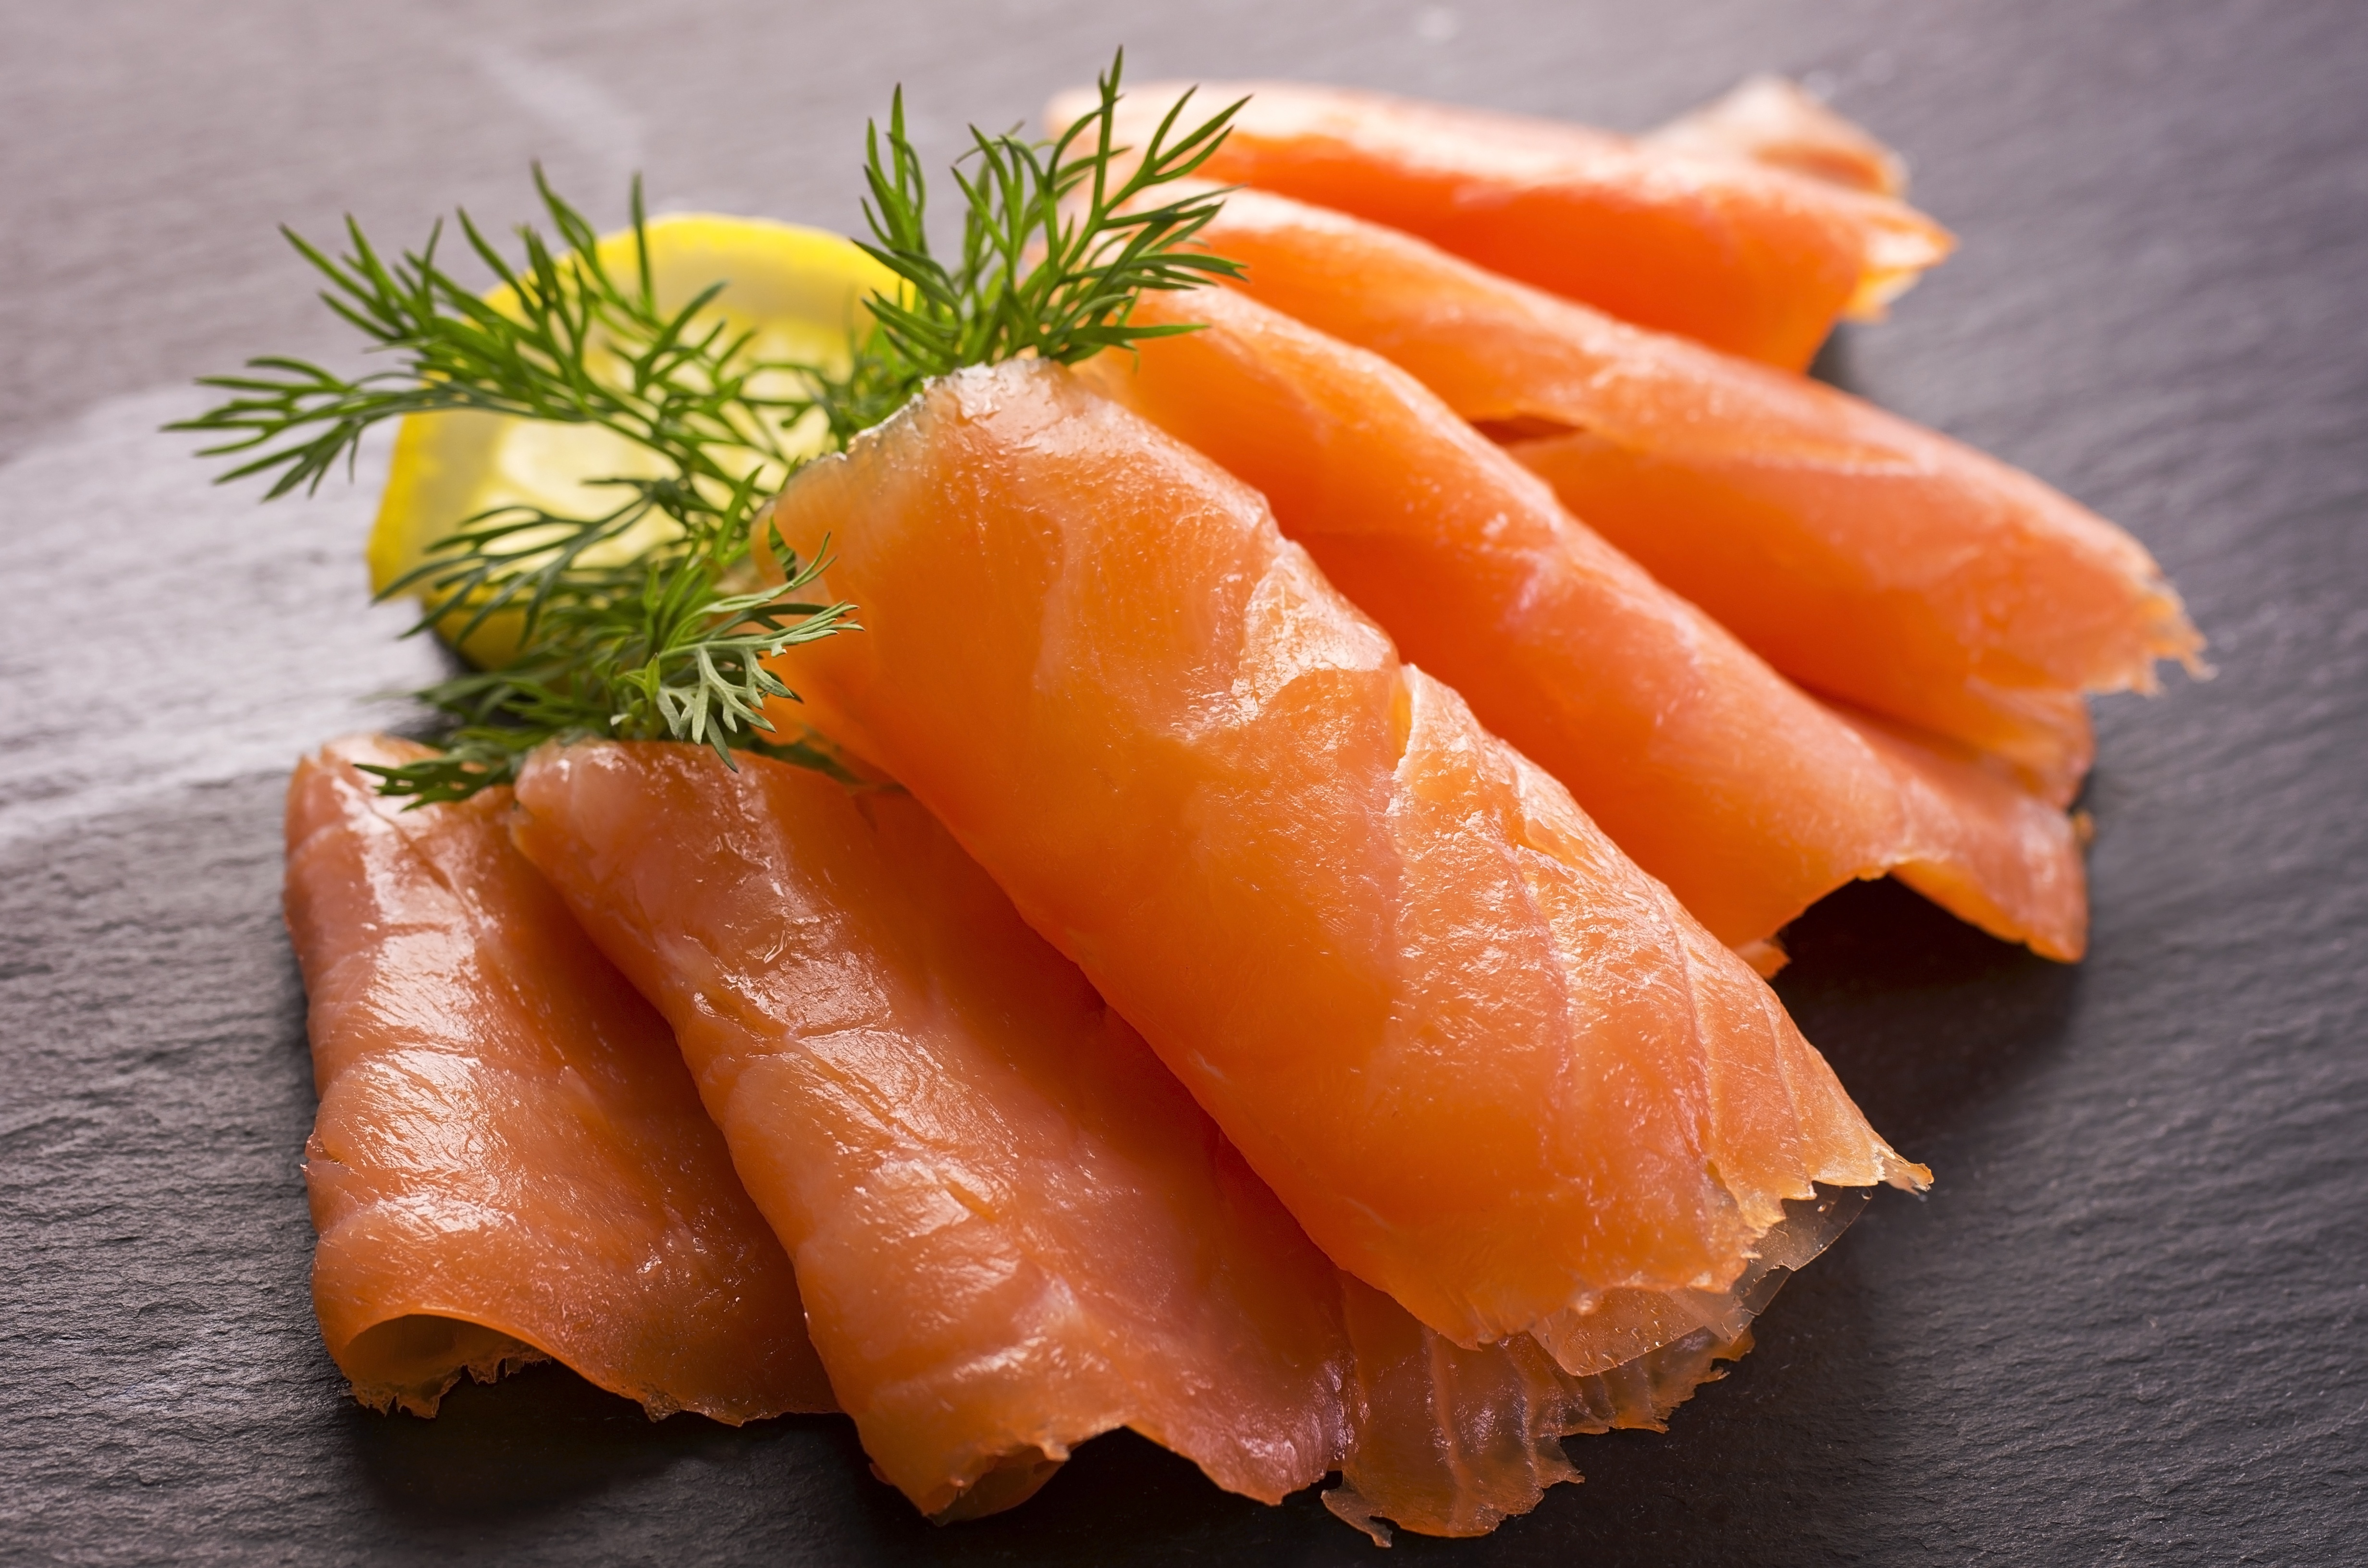 Article image for Listeria deaths: Smoked salmon safe for most, but should be avoided by some